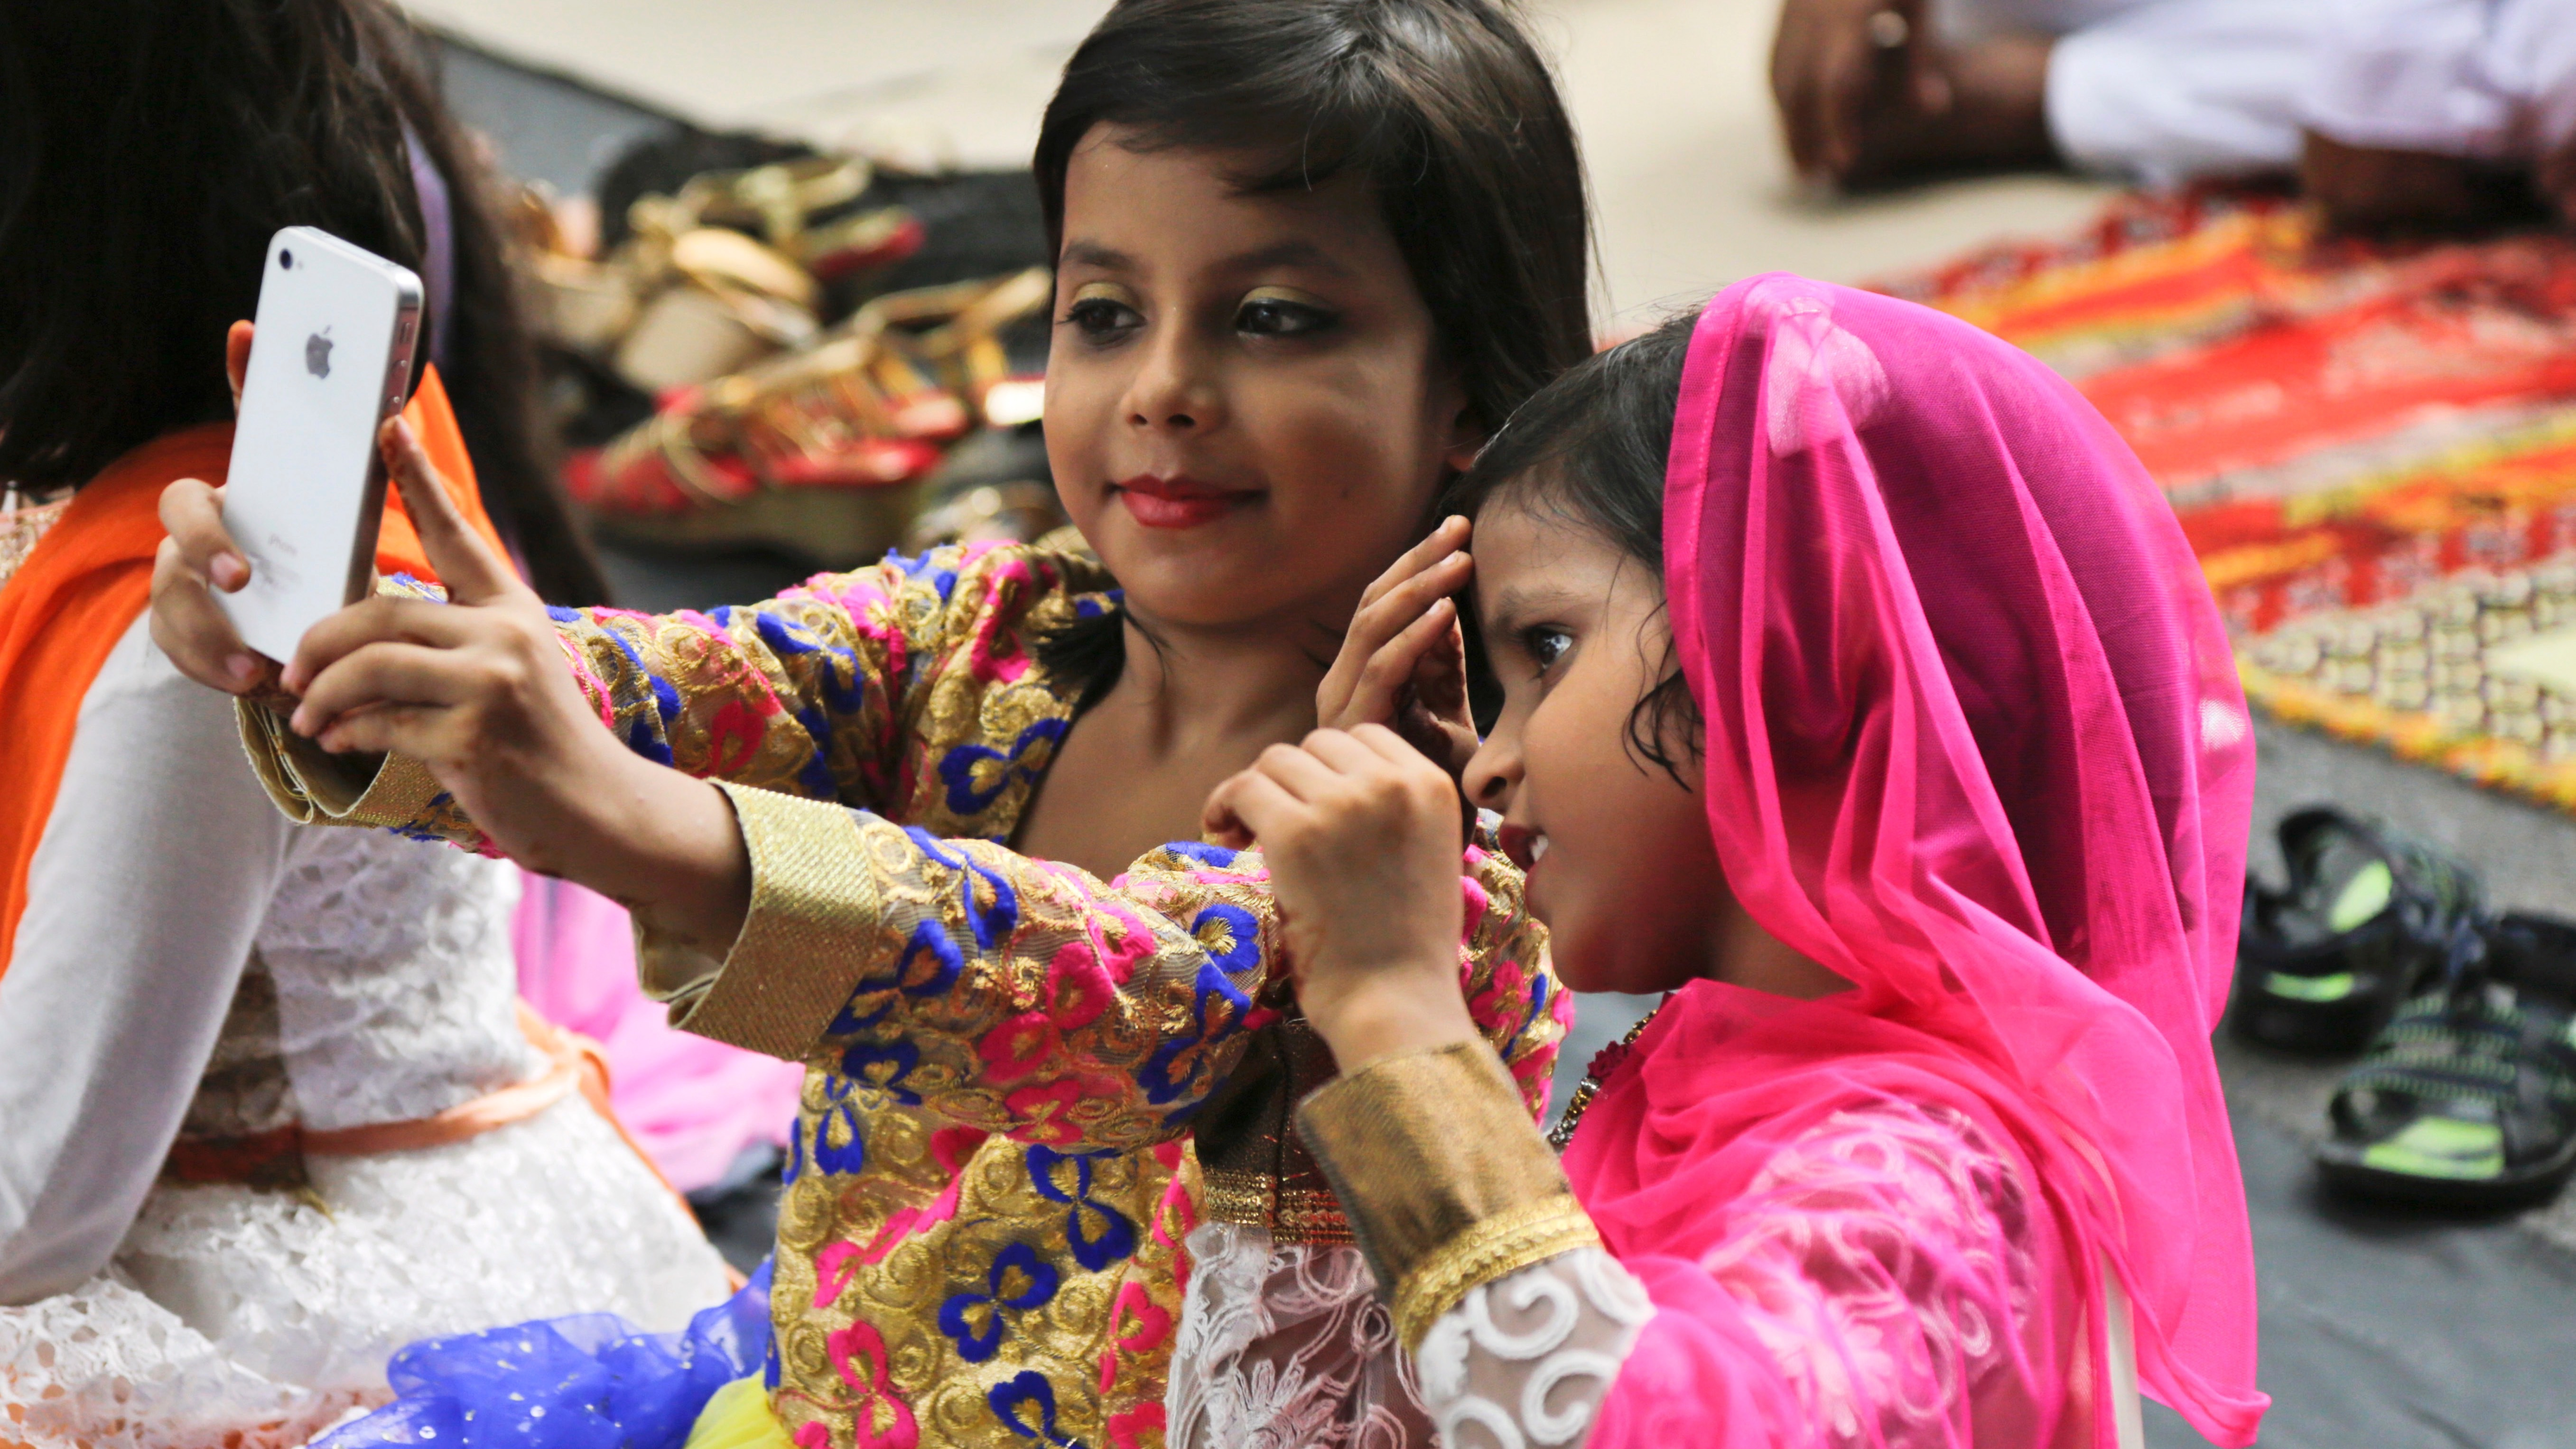 Young Indian Muslim girls take a selfie with a mobile phone as they join prayers during Eid al-Adha in Kolkata, India, Tuesday, Sept. 13, 2016. Eid al-Adha, or the festival of sacrifice, is celebrated by Muslims around the world to commemorate Prophet Ibrahim's test of faith. During the holiday, Muslims slaughter livestock and distribute part of the meat to the poor. (AP Photo/Bikas Das)